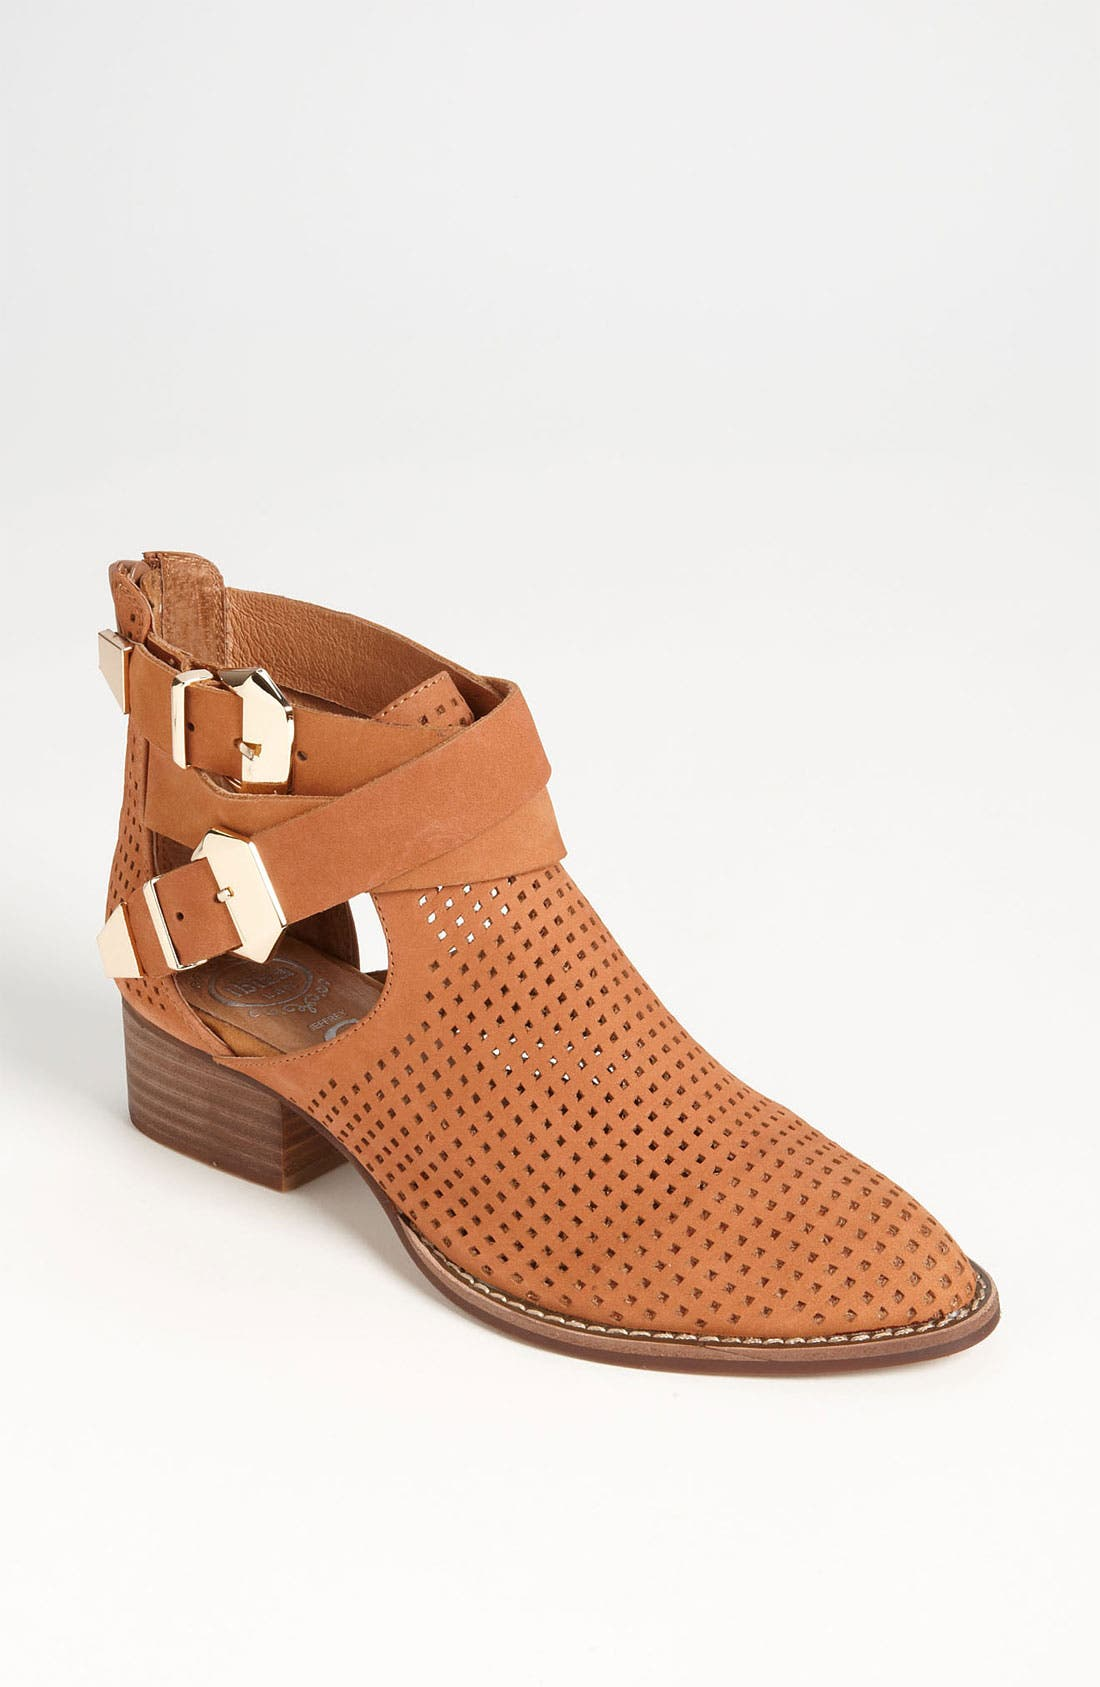 Alternate Image 1 Selected - Jeffrey Campbell 'Everly' Bootie